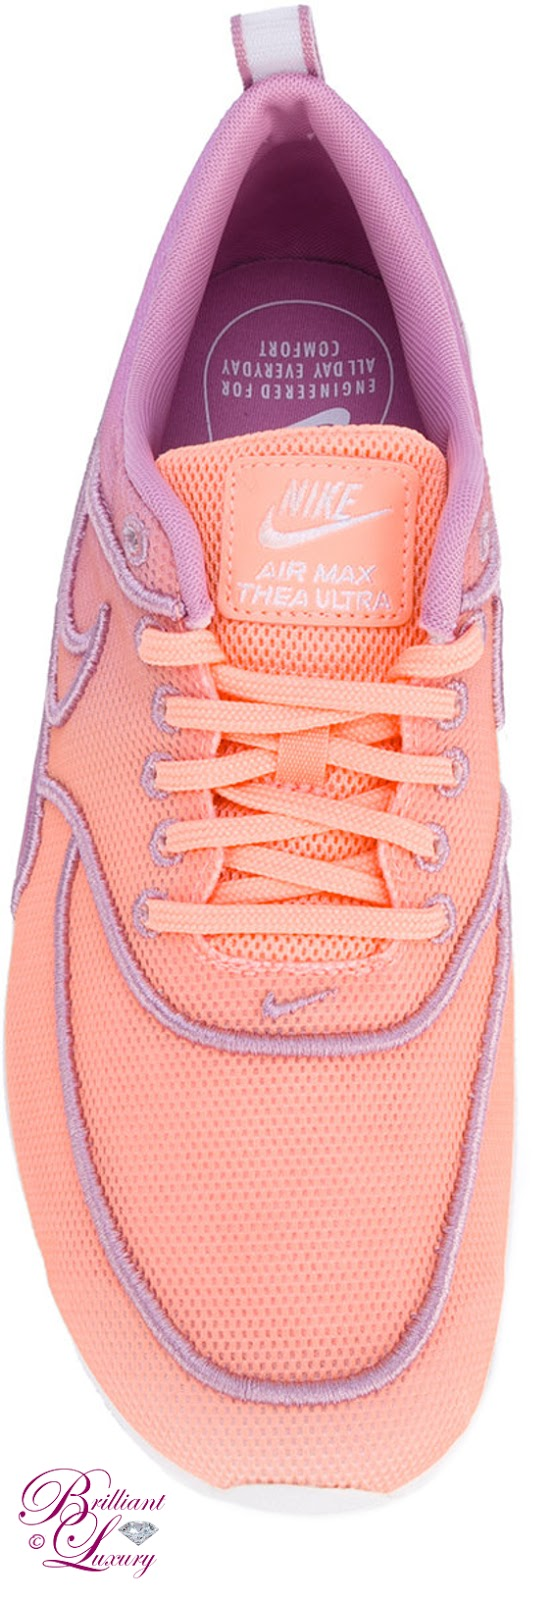 Brilliant Luxury ♦ Nike Air Max Thea Ultra Sneakers